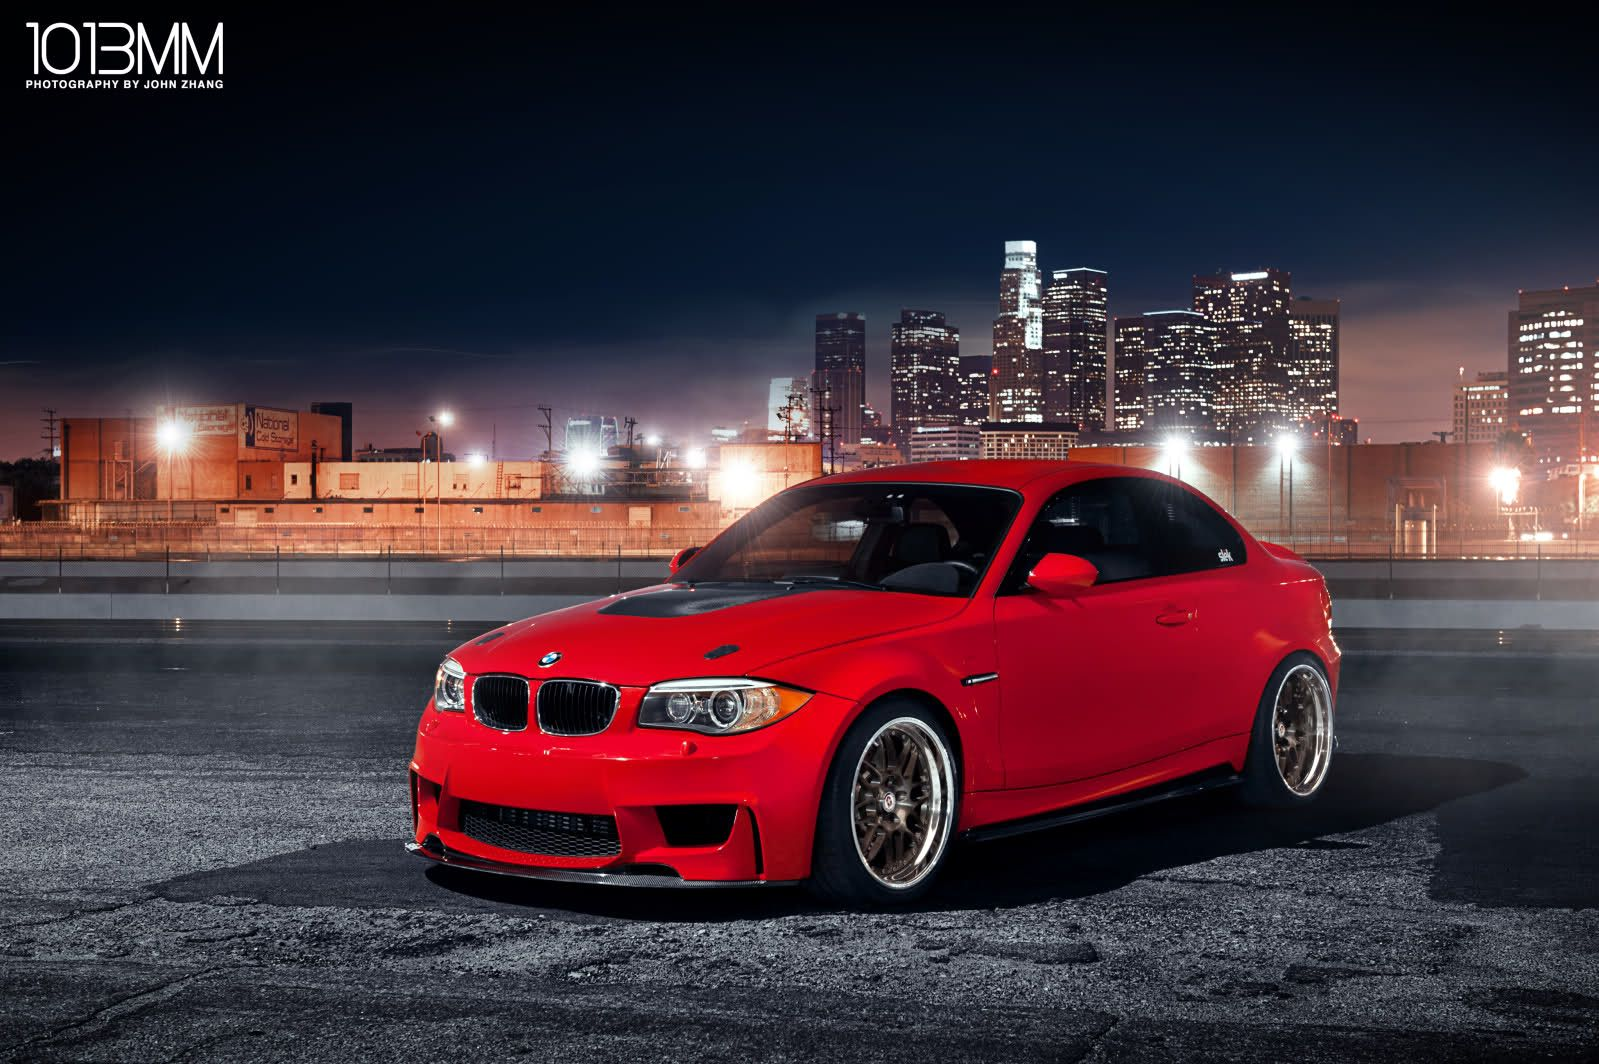 The Red 1M BMW 1 Series Coupe Forum / 1 Series